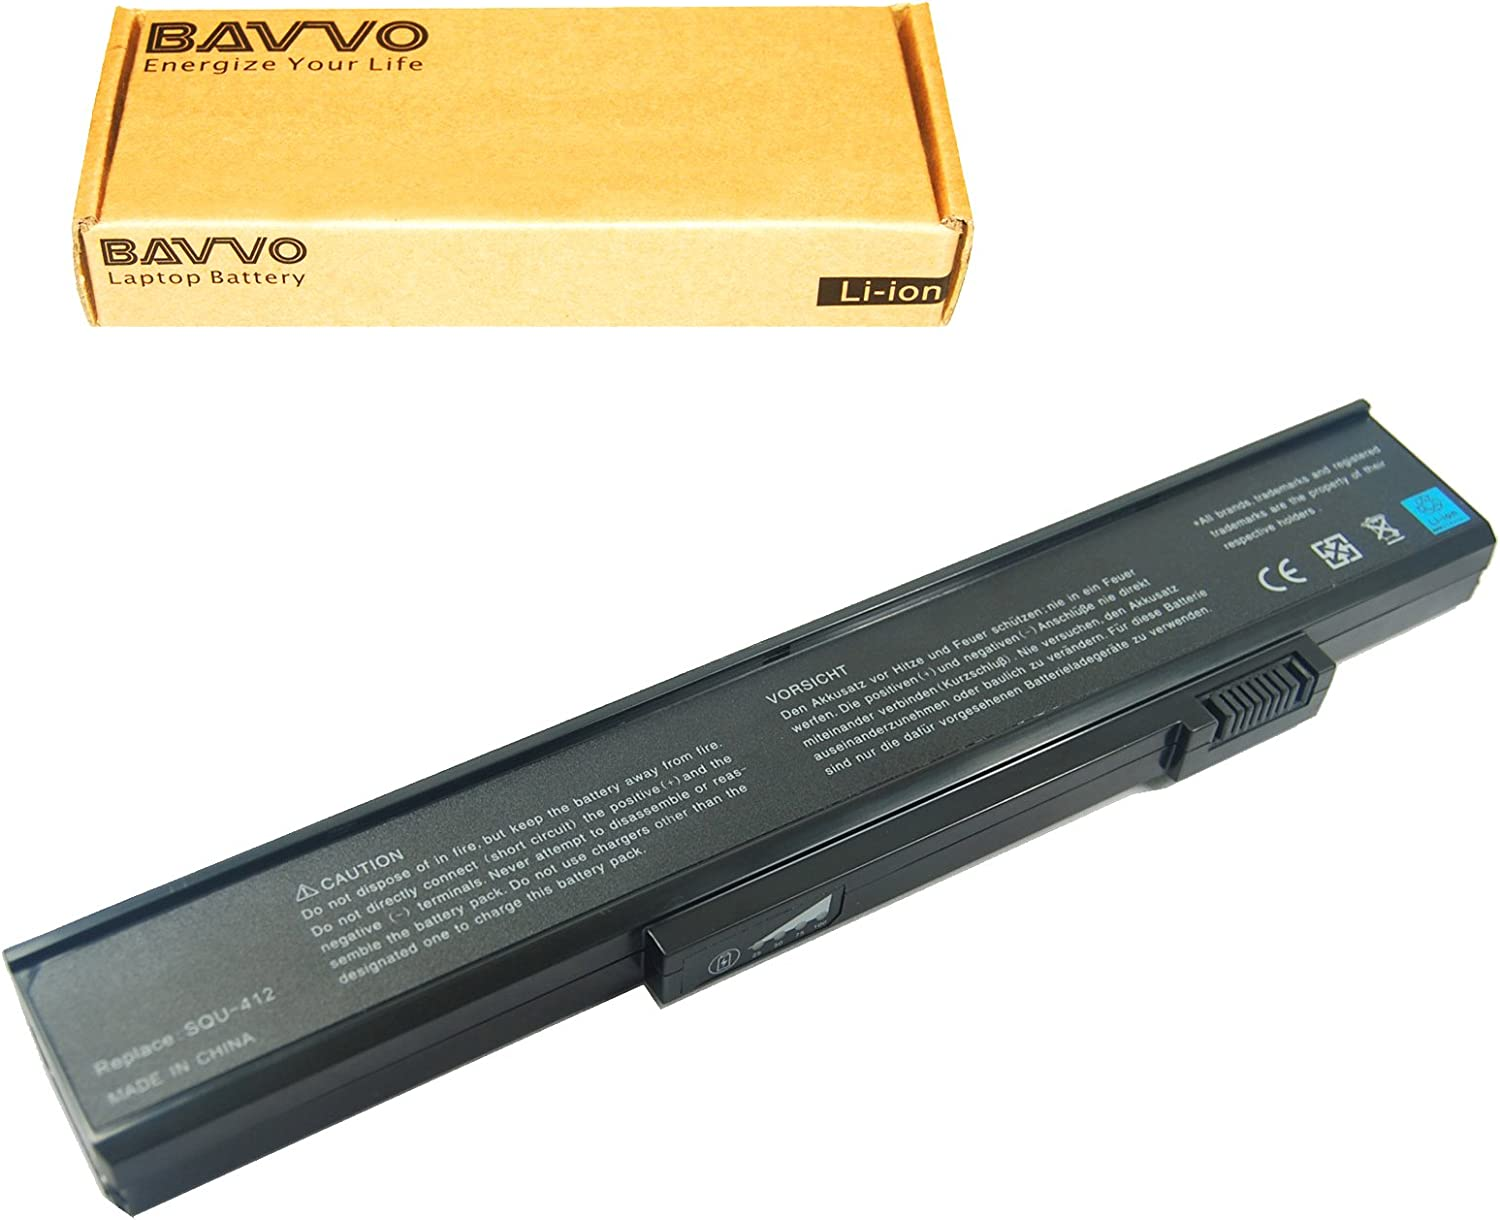 Bavvo Battery Compatible with Gateway E-475M ML6720 MT3110C MT3421 MT3423 MT6017 MT6456 MT6458 MT6704 MT6706 MT6709 MT6711 MX6025 MX6028